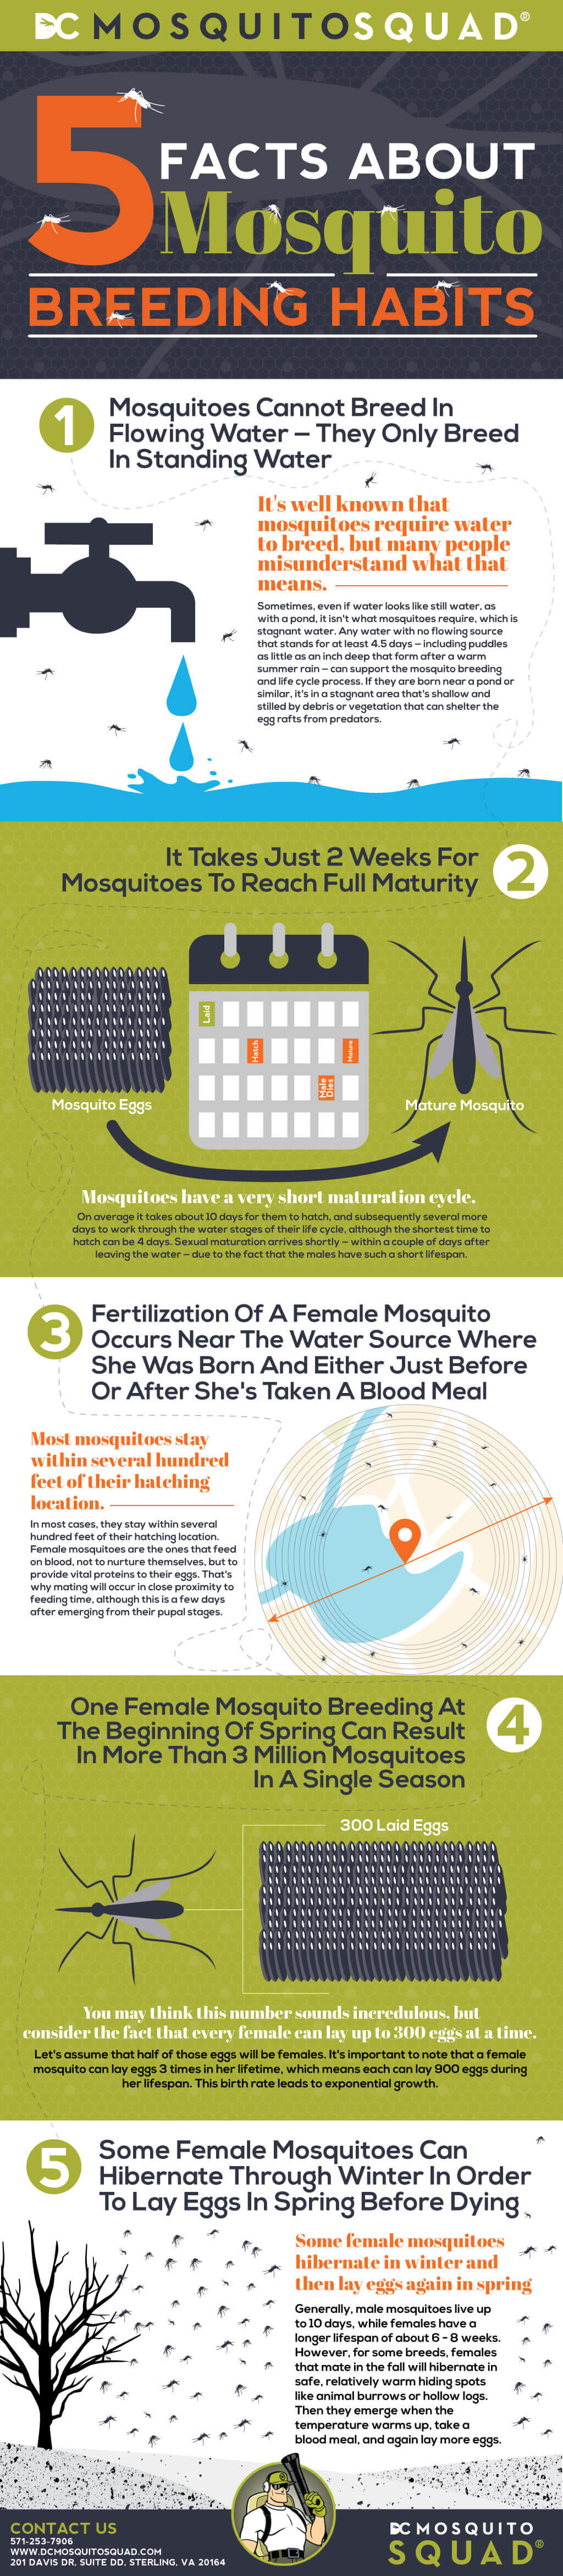 Infographic showing 5 Facts About Mosquito Breeding Habits